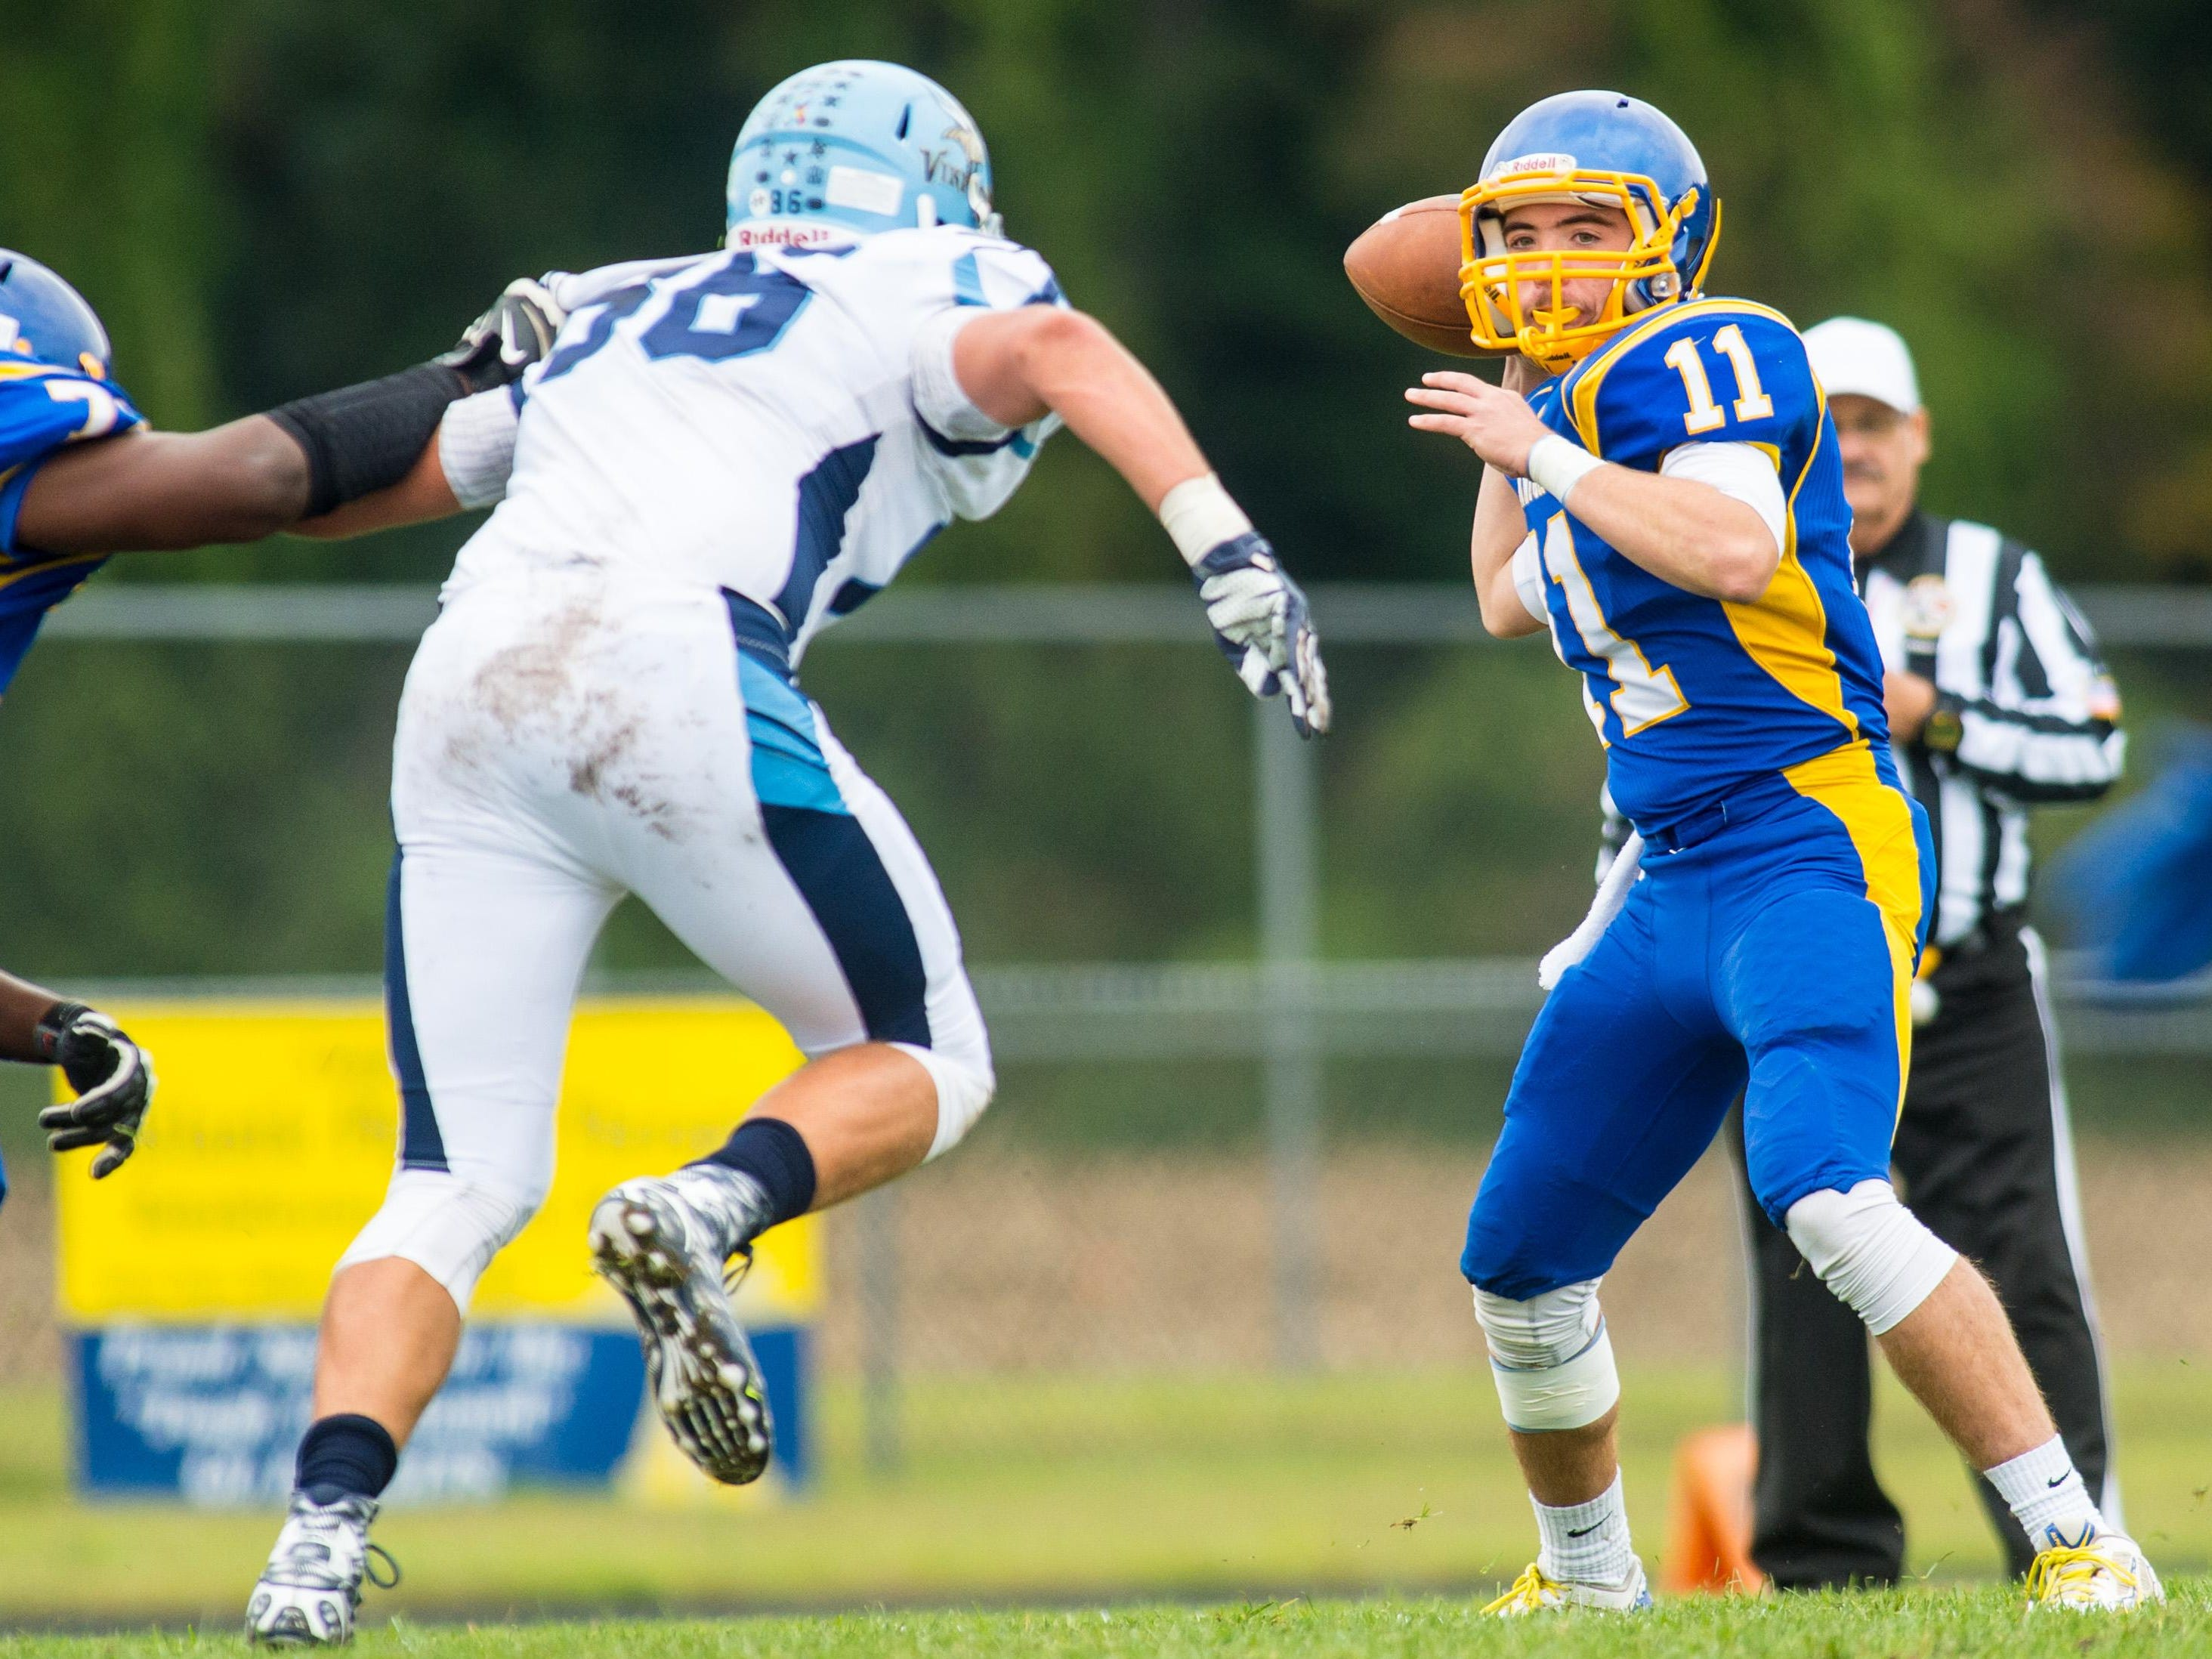 Sussex Central quarterback William Wells (11) drops back for a pass against Cape Henlopen at Sussex Central.